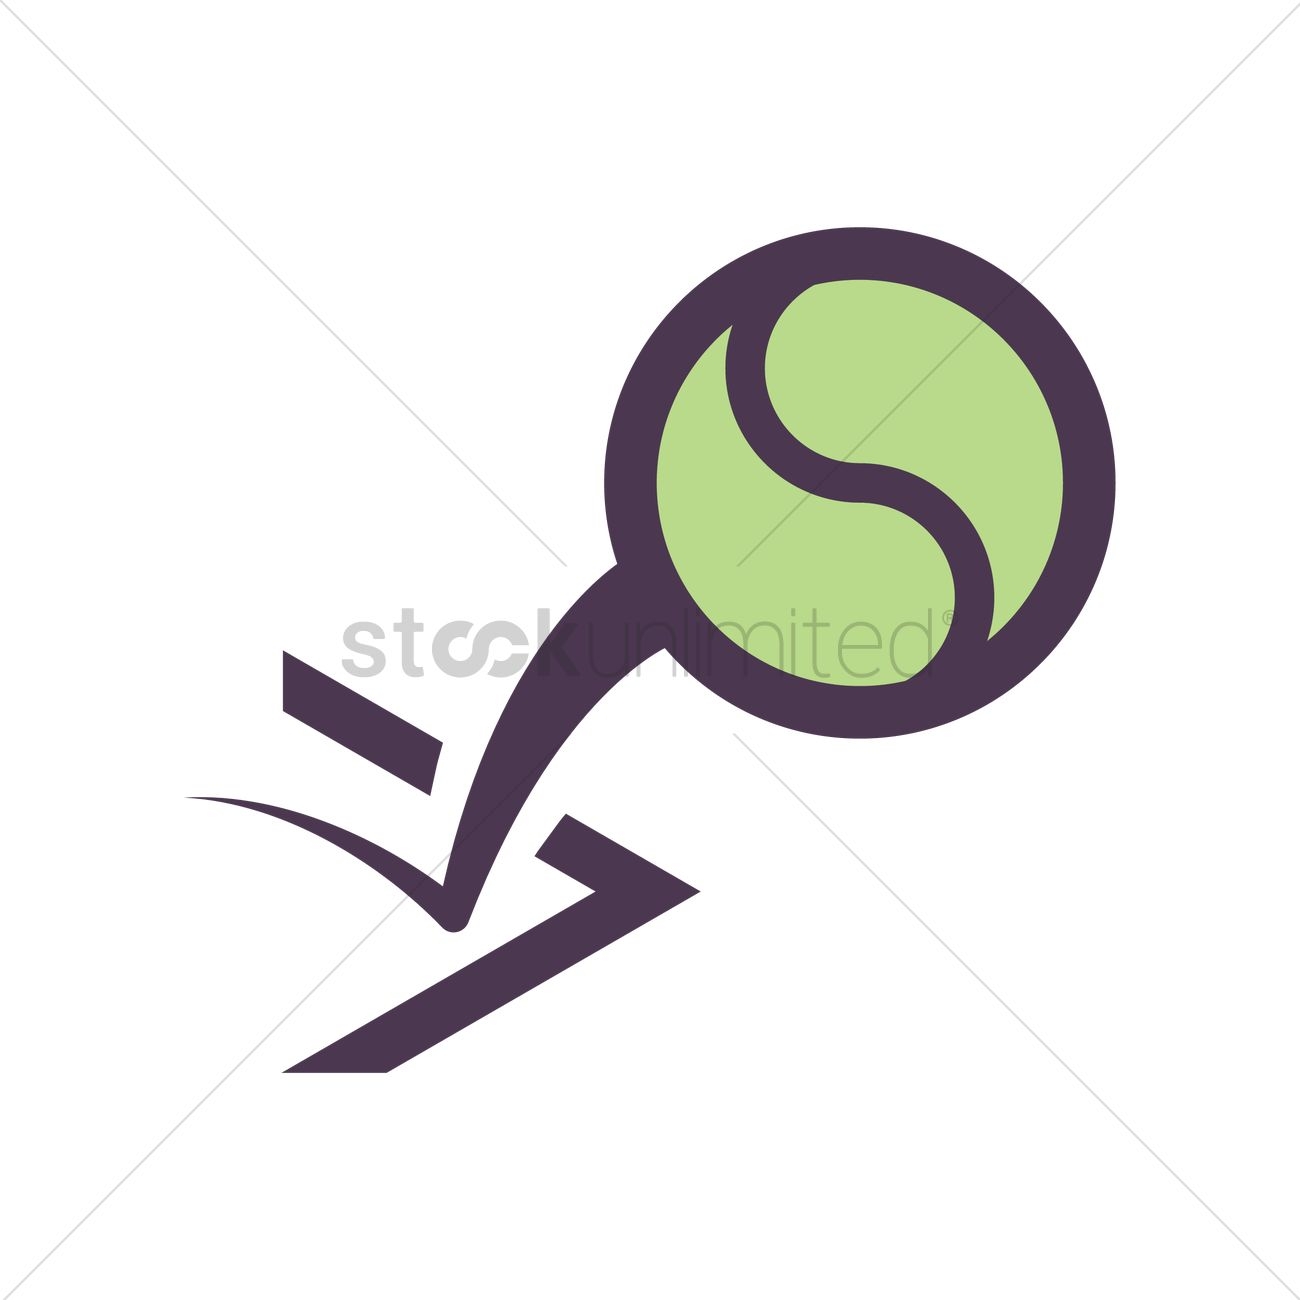 Bouncing Tennis Ball Vector Image 1977703 Stockunlimited